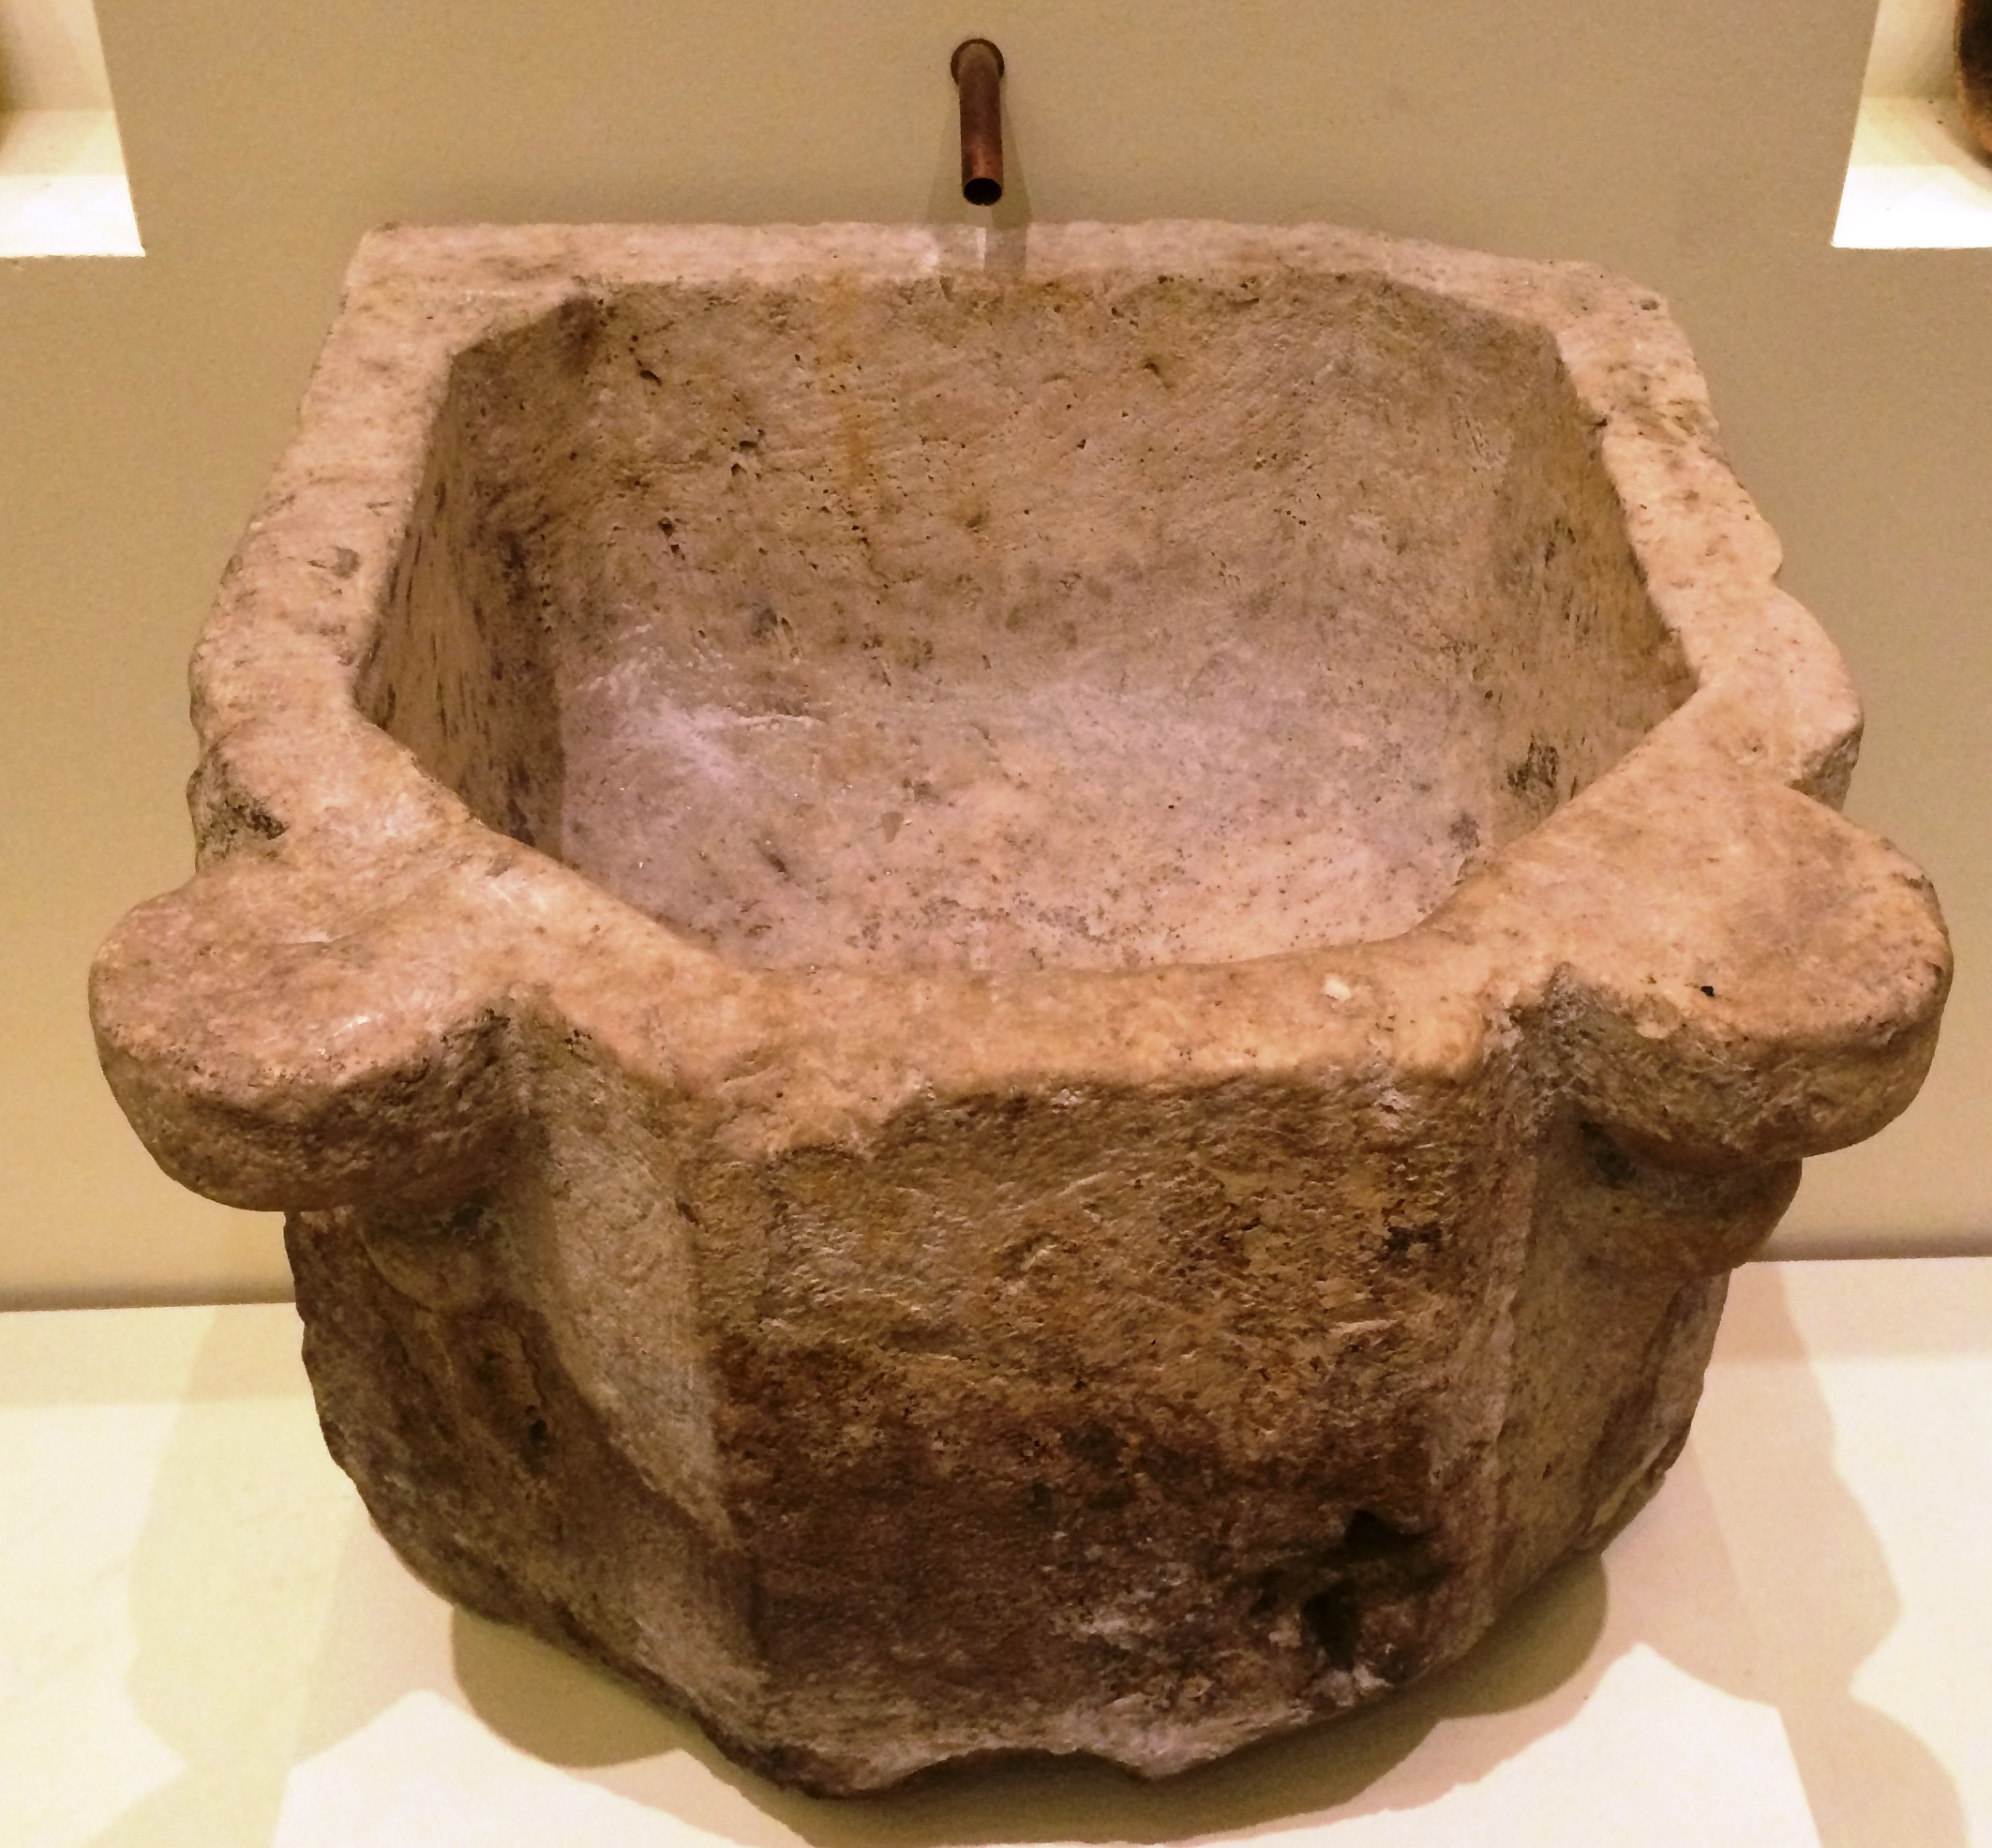 File:Limestone basin c 1600 Rudas Baths IMG 0653.JPG - Wikimedia Commons